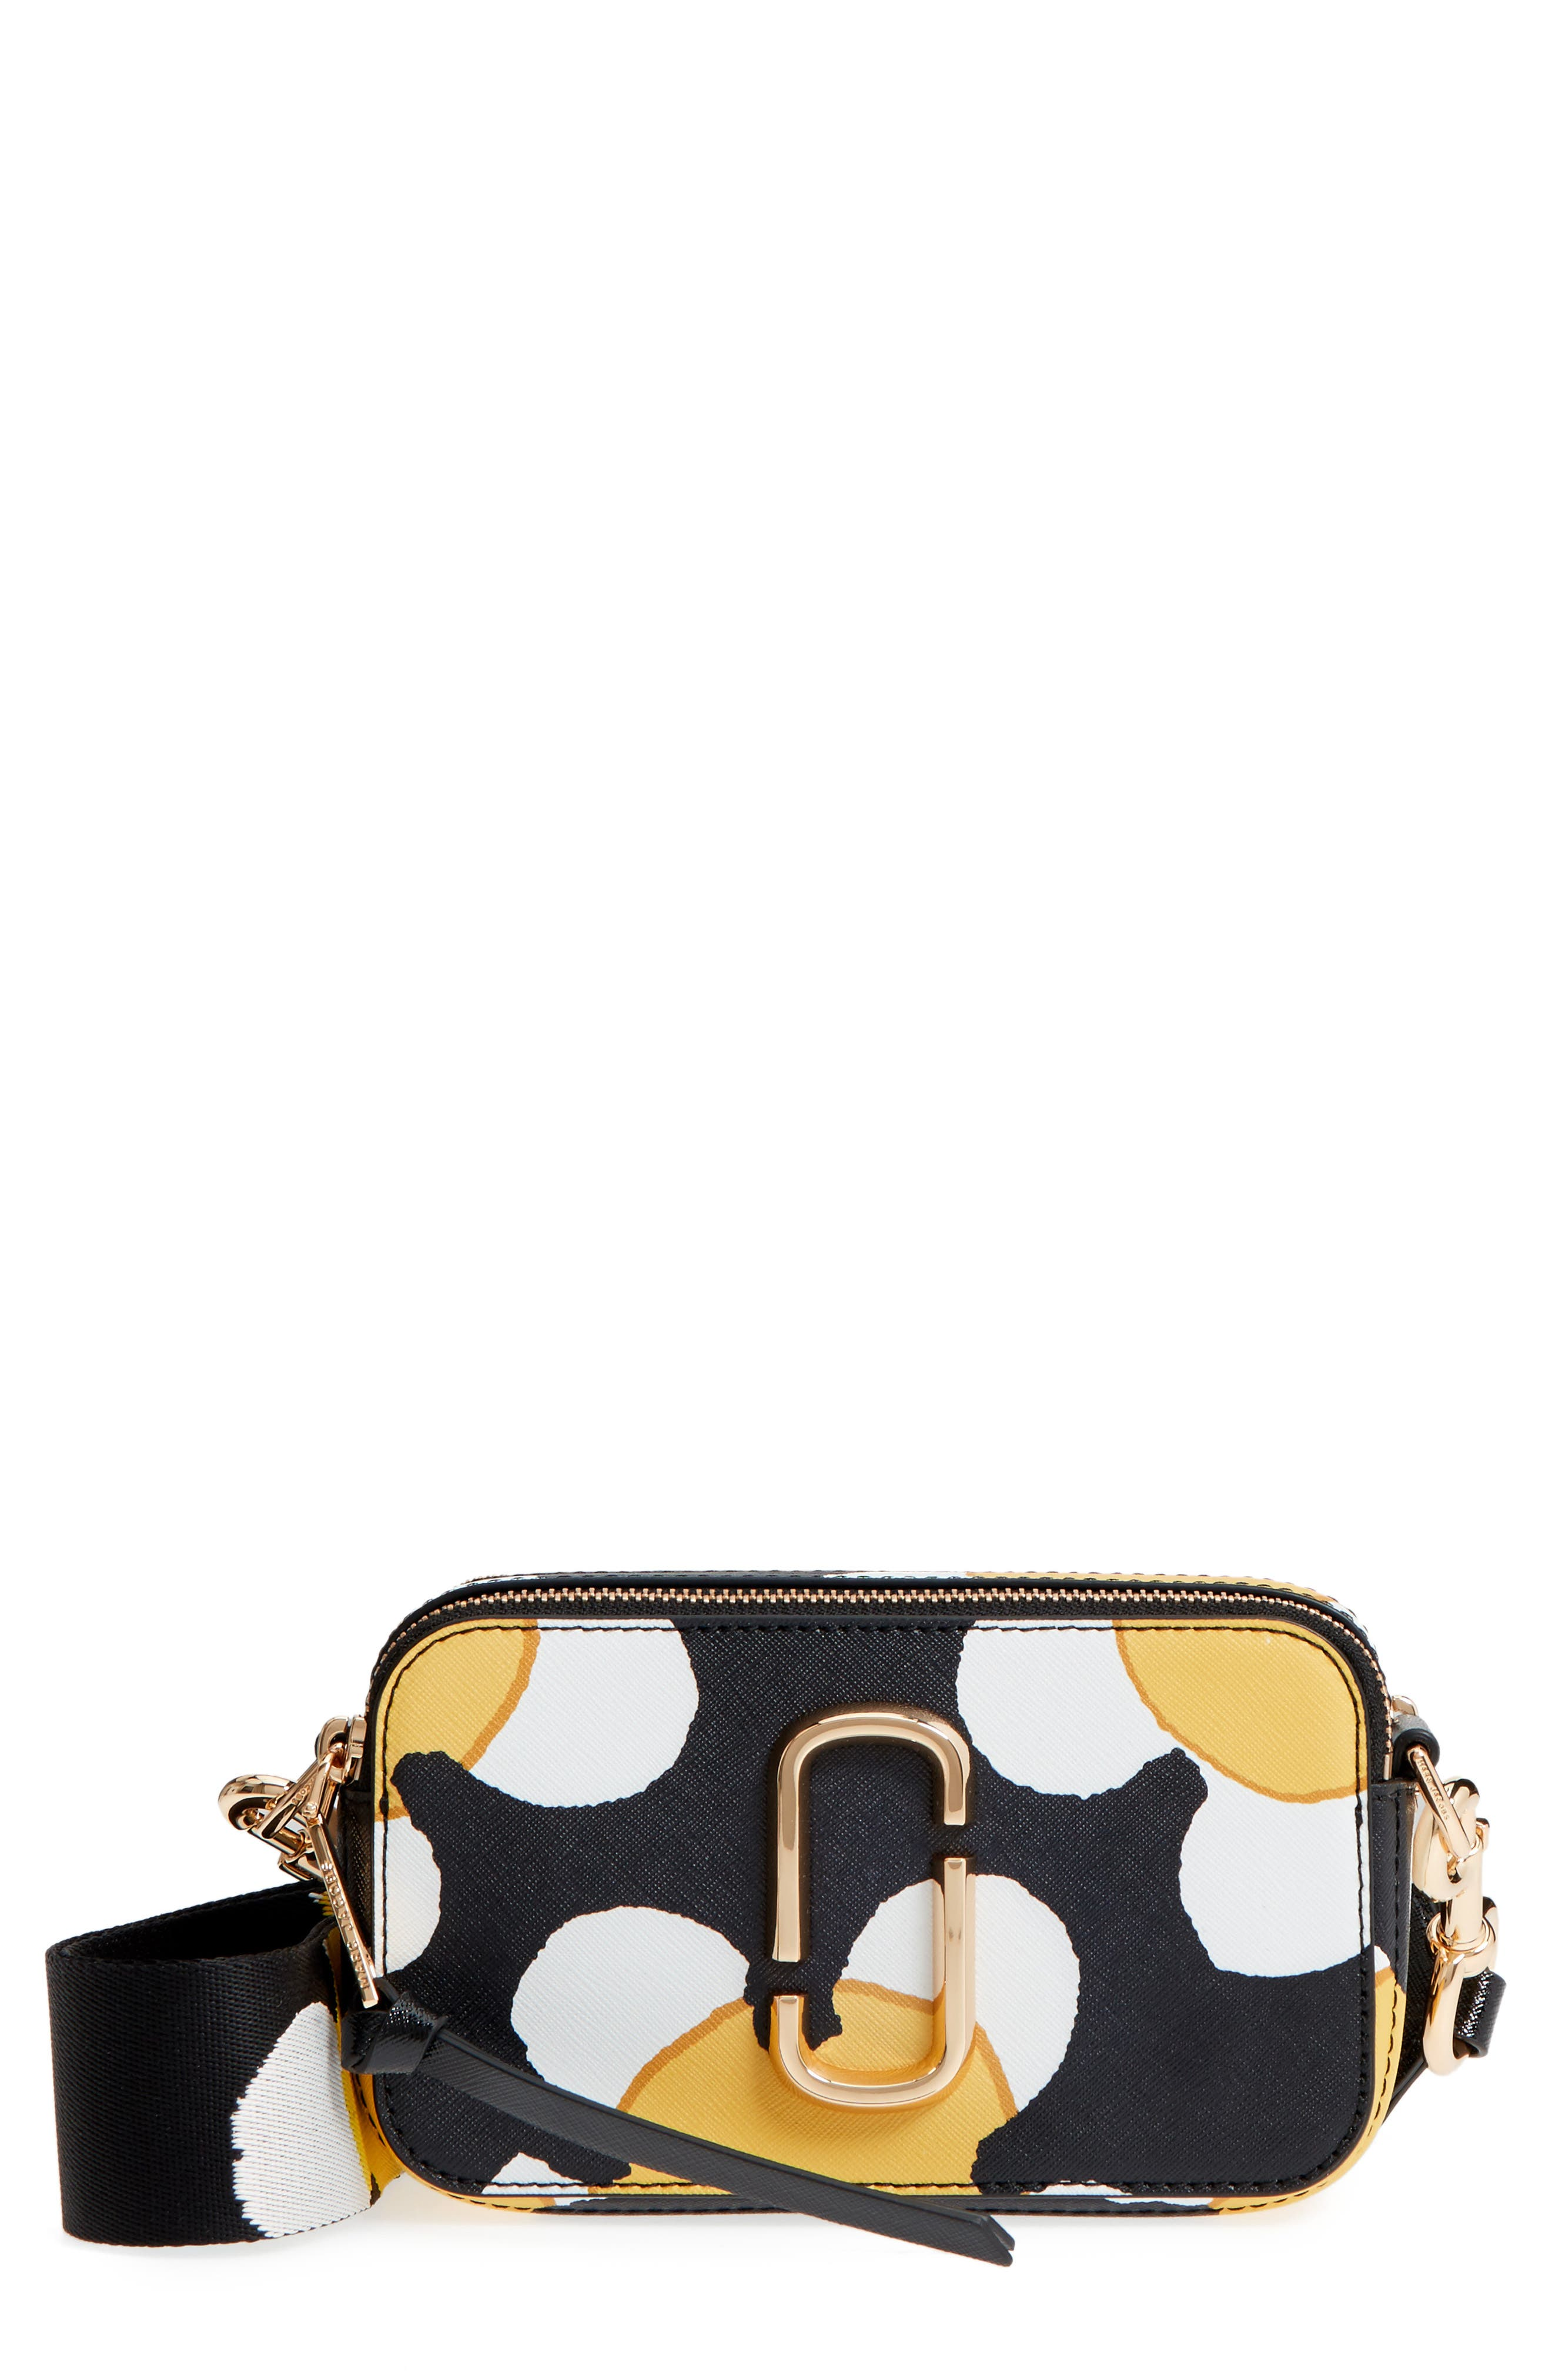 Snapshot Daisy Print Leather Crossbody Bag,                             Main thumbnail 1, color,                             Yellow Multi